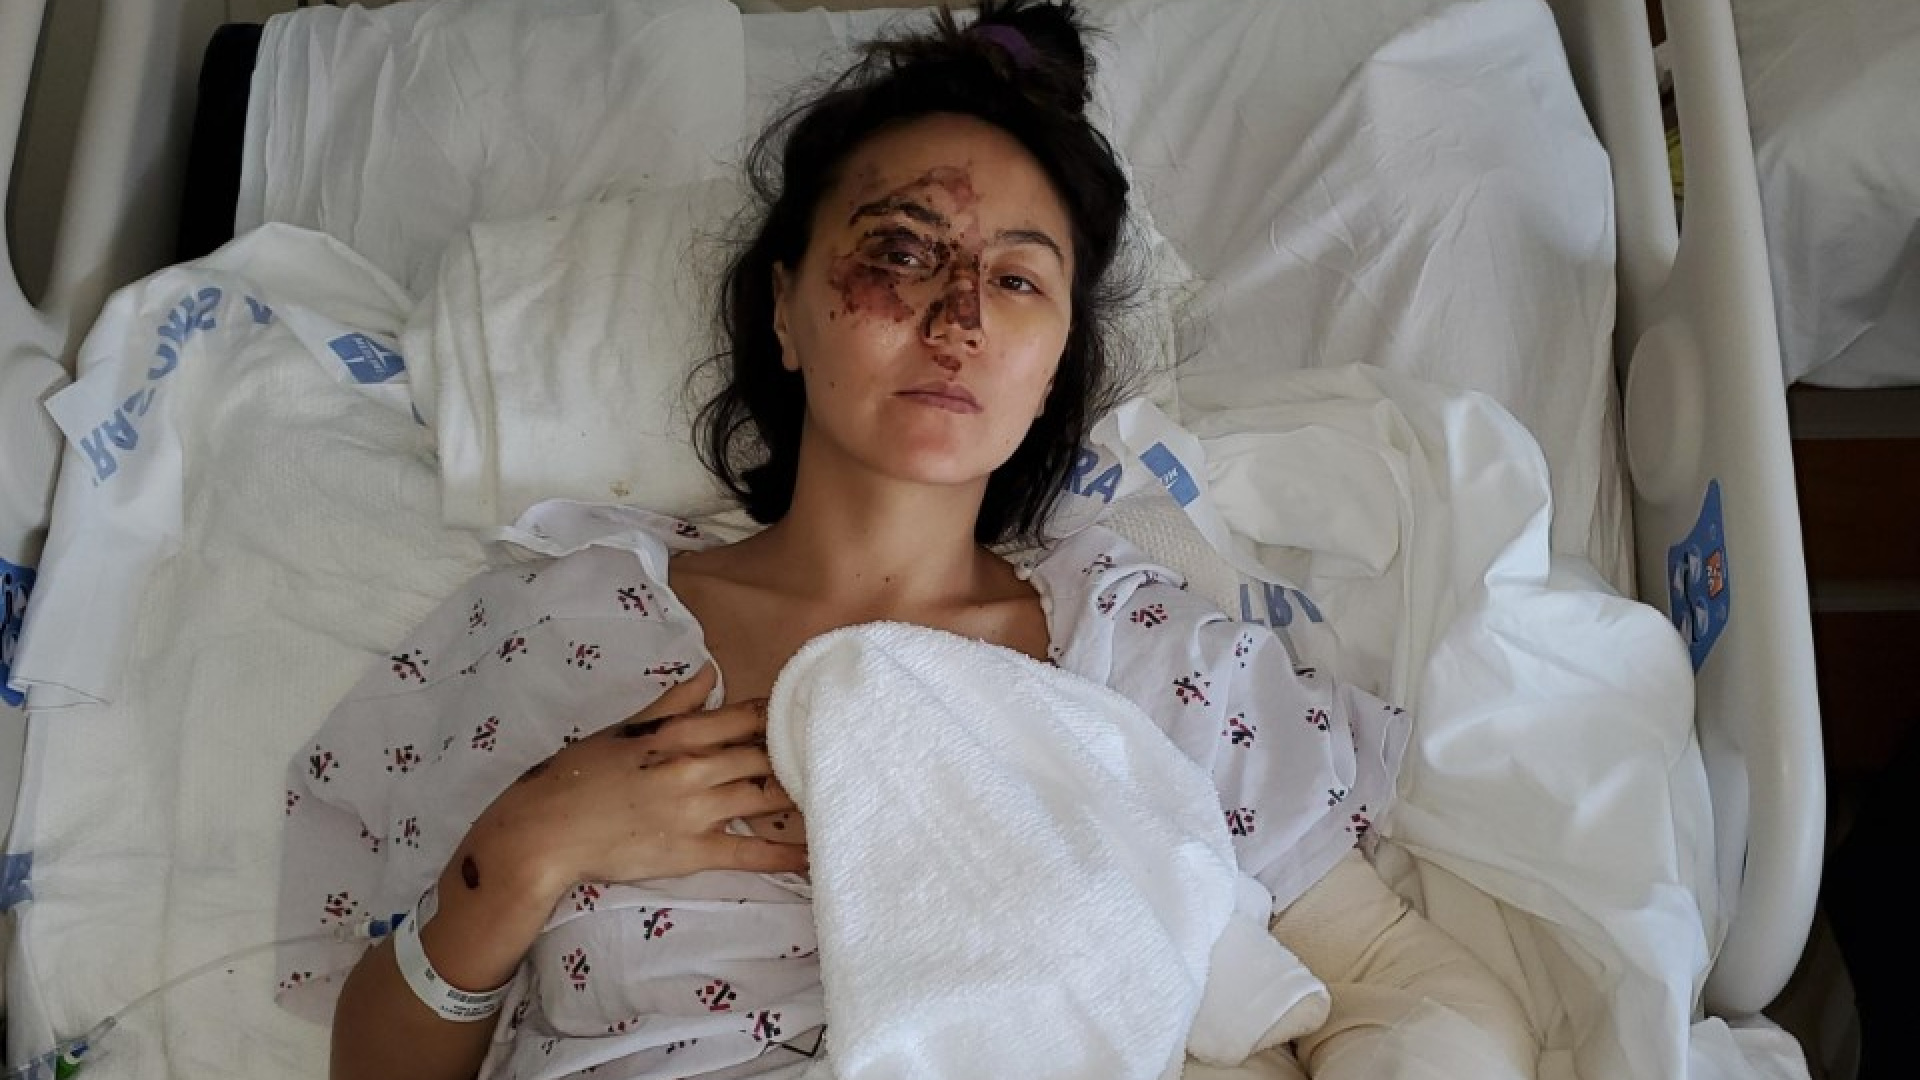 Bota Zhamysbayeva, 34, is seen in her hospital bed after being run over in downtown Los Angeles. (LAPD)